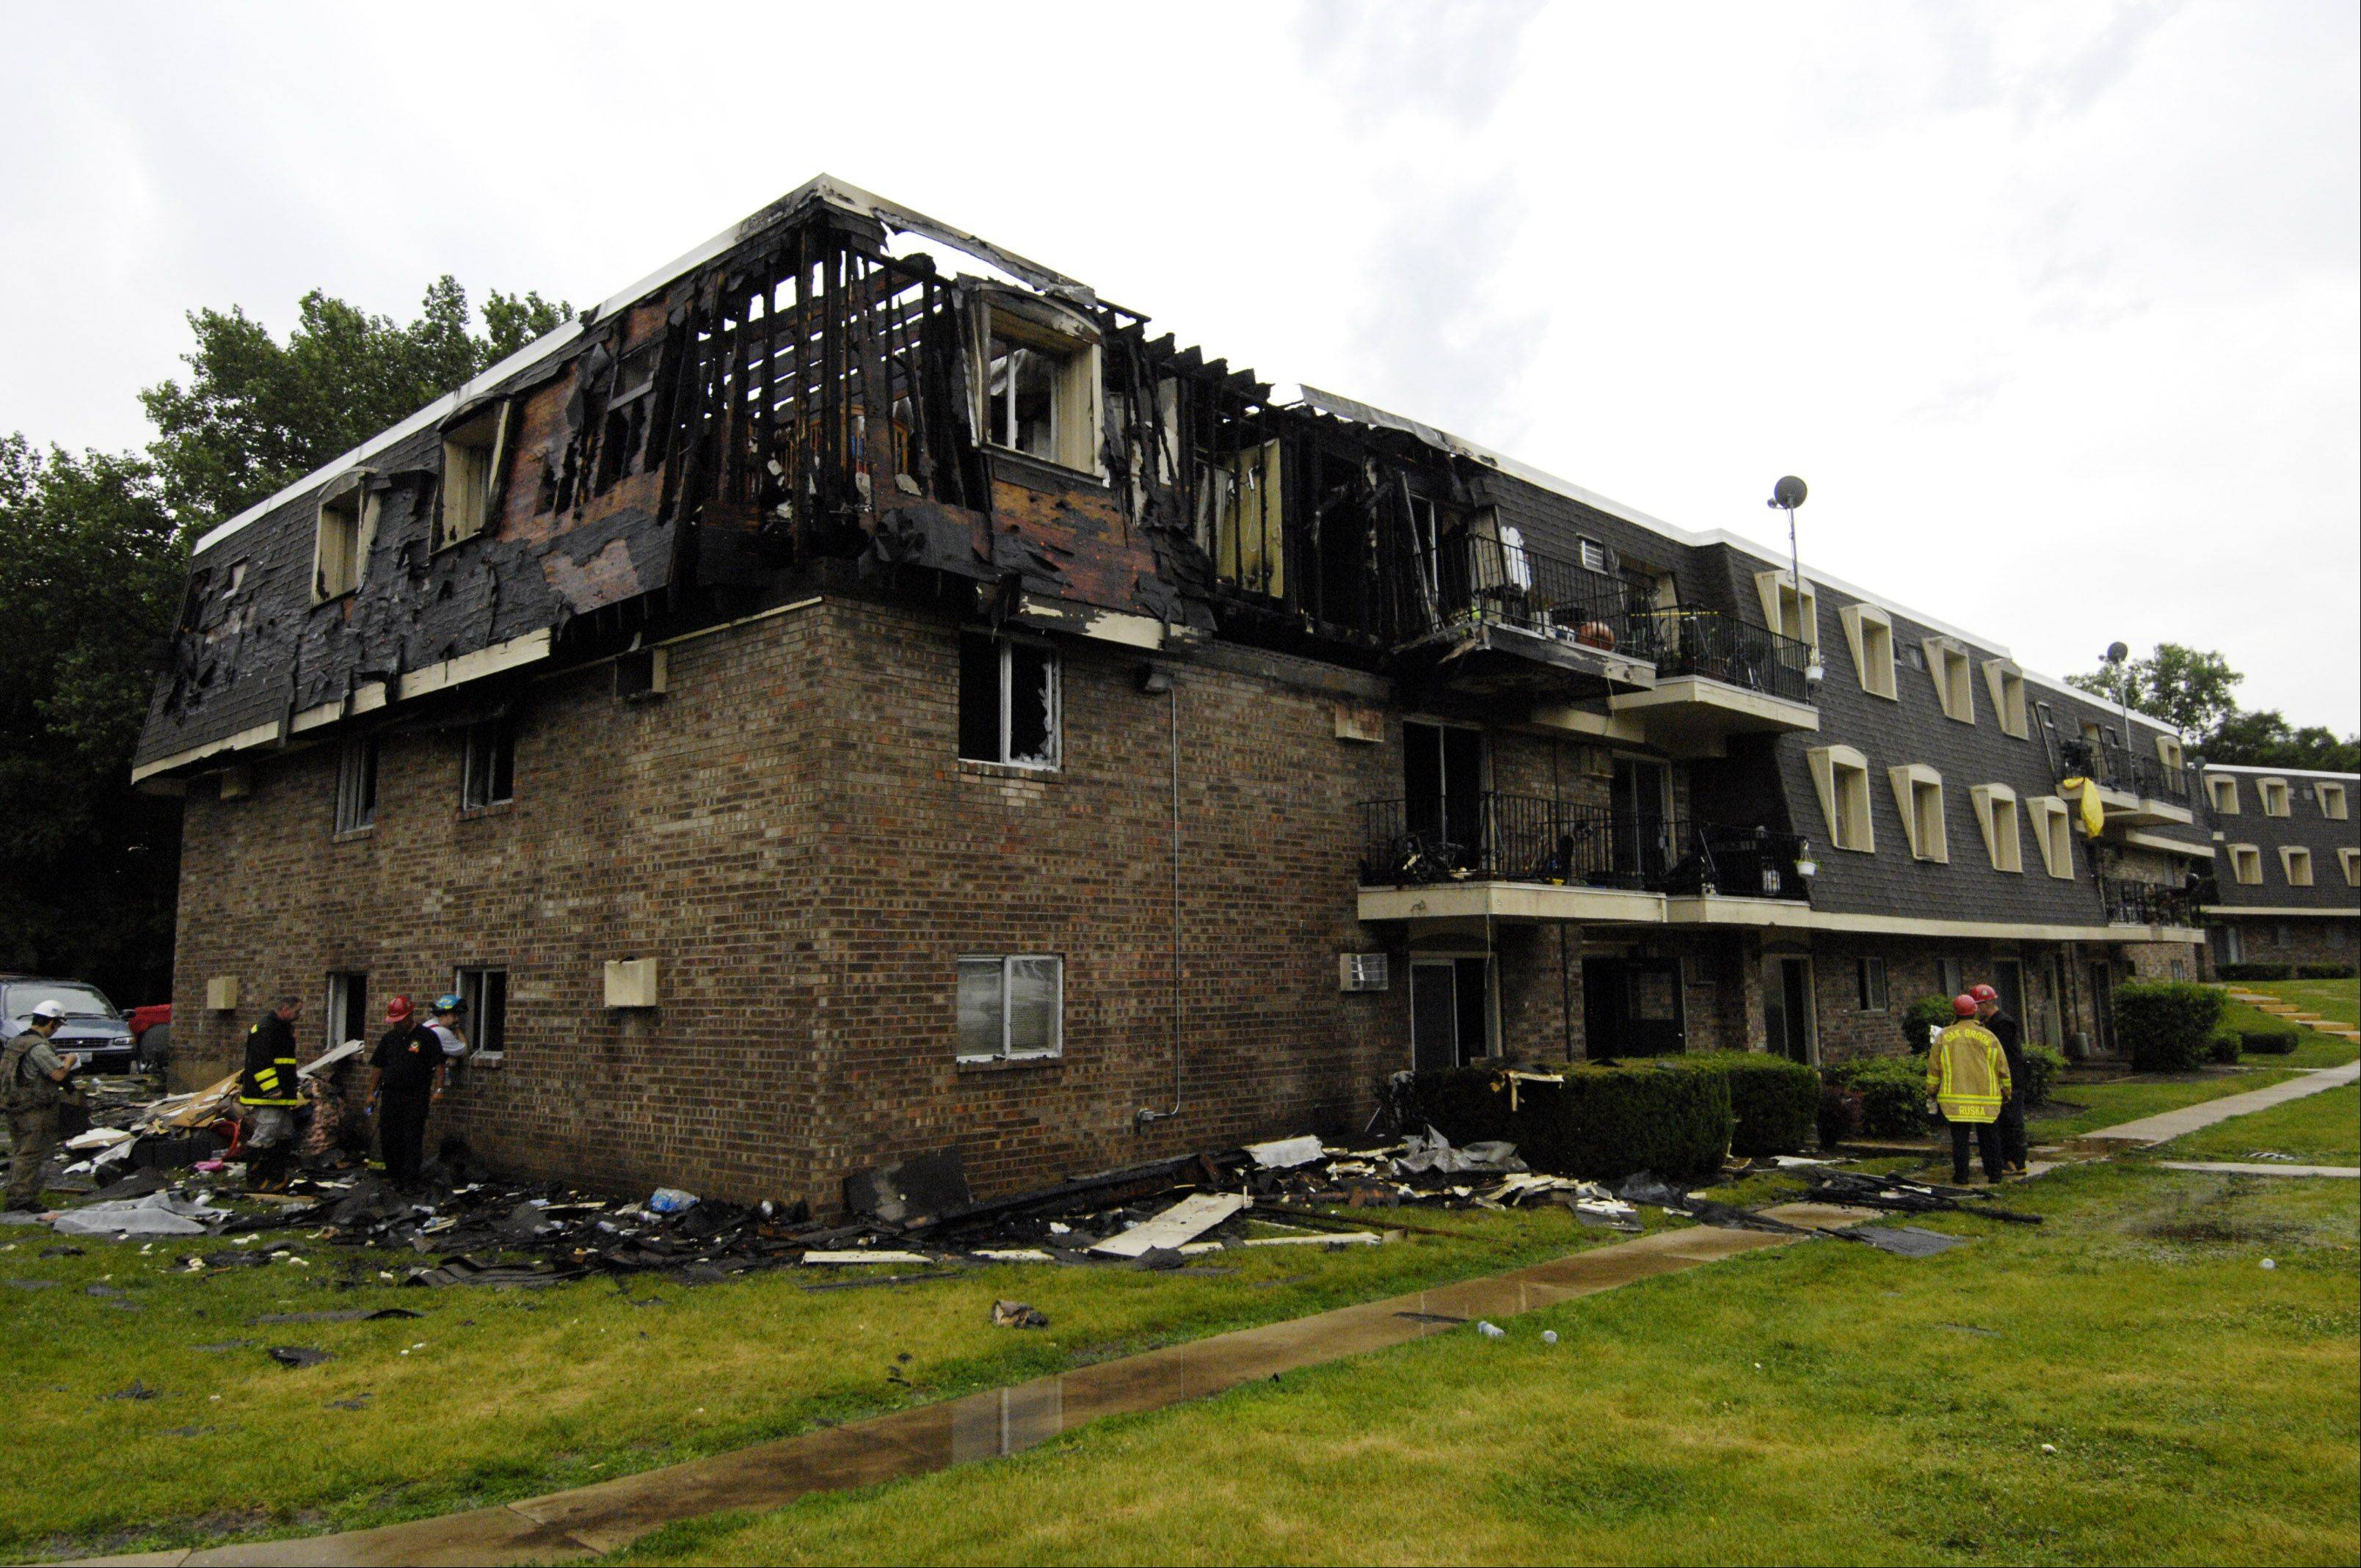 Firefighters are probing the cause of an early morning blaze Monday that displaced more than 50 residents from Aspen Ridge Apartments on the 500 block of Carriage Drive in West Chicago. Officials said no residents were hurt, but one firefighter was treated for a slight injury.